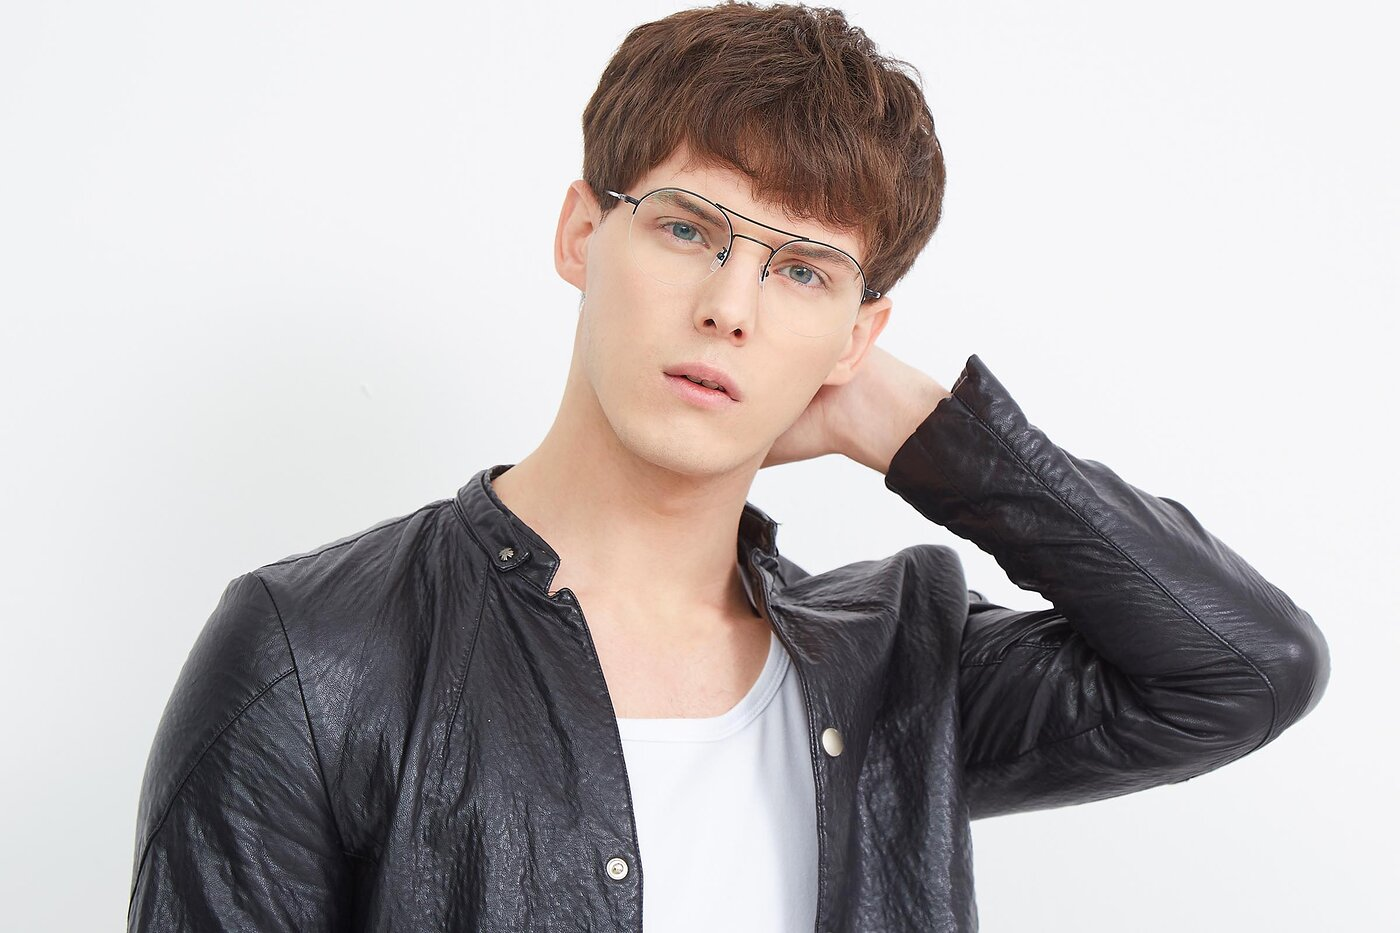 Black Aviator Round Semi-Rimless Eyeglasses